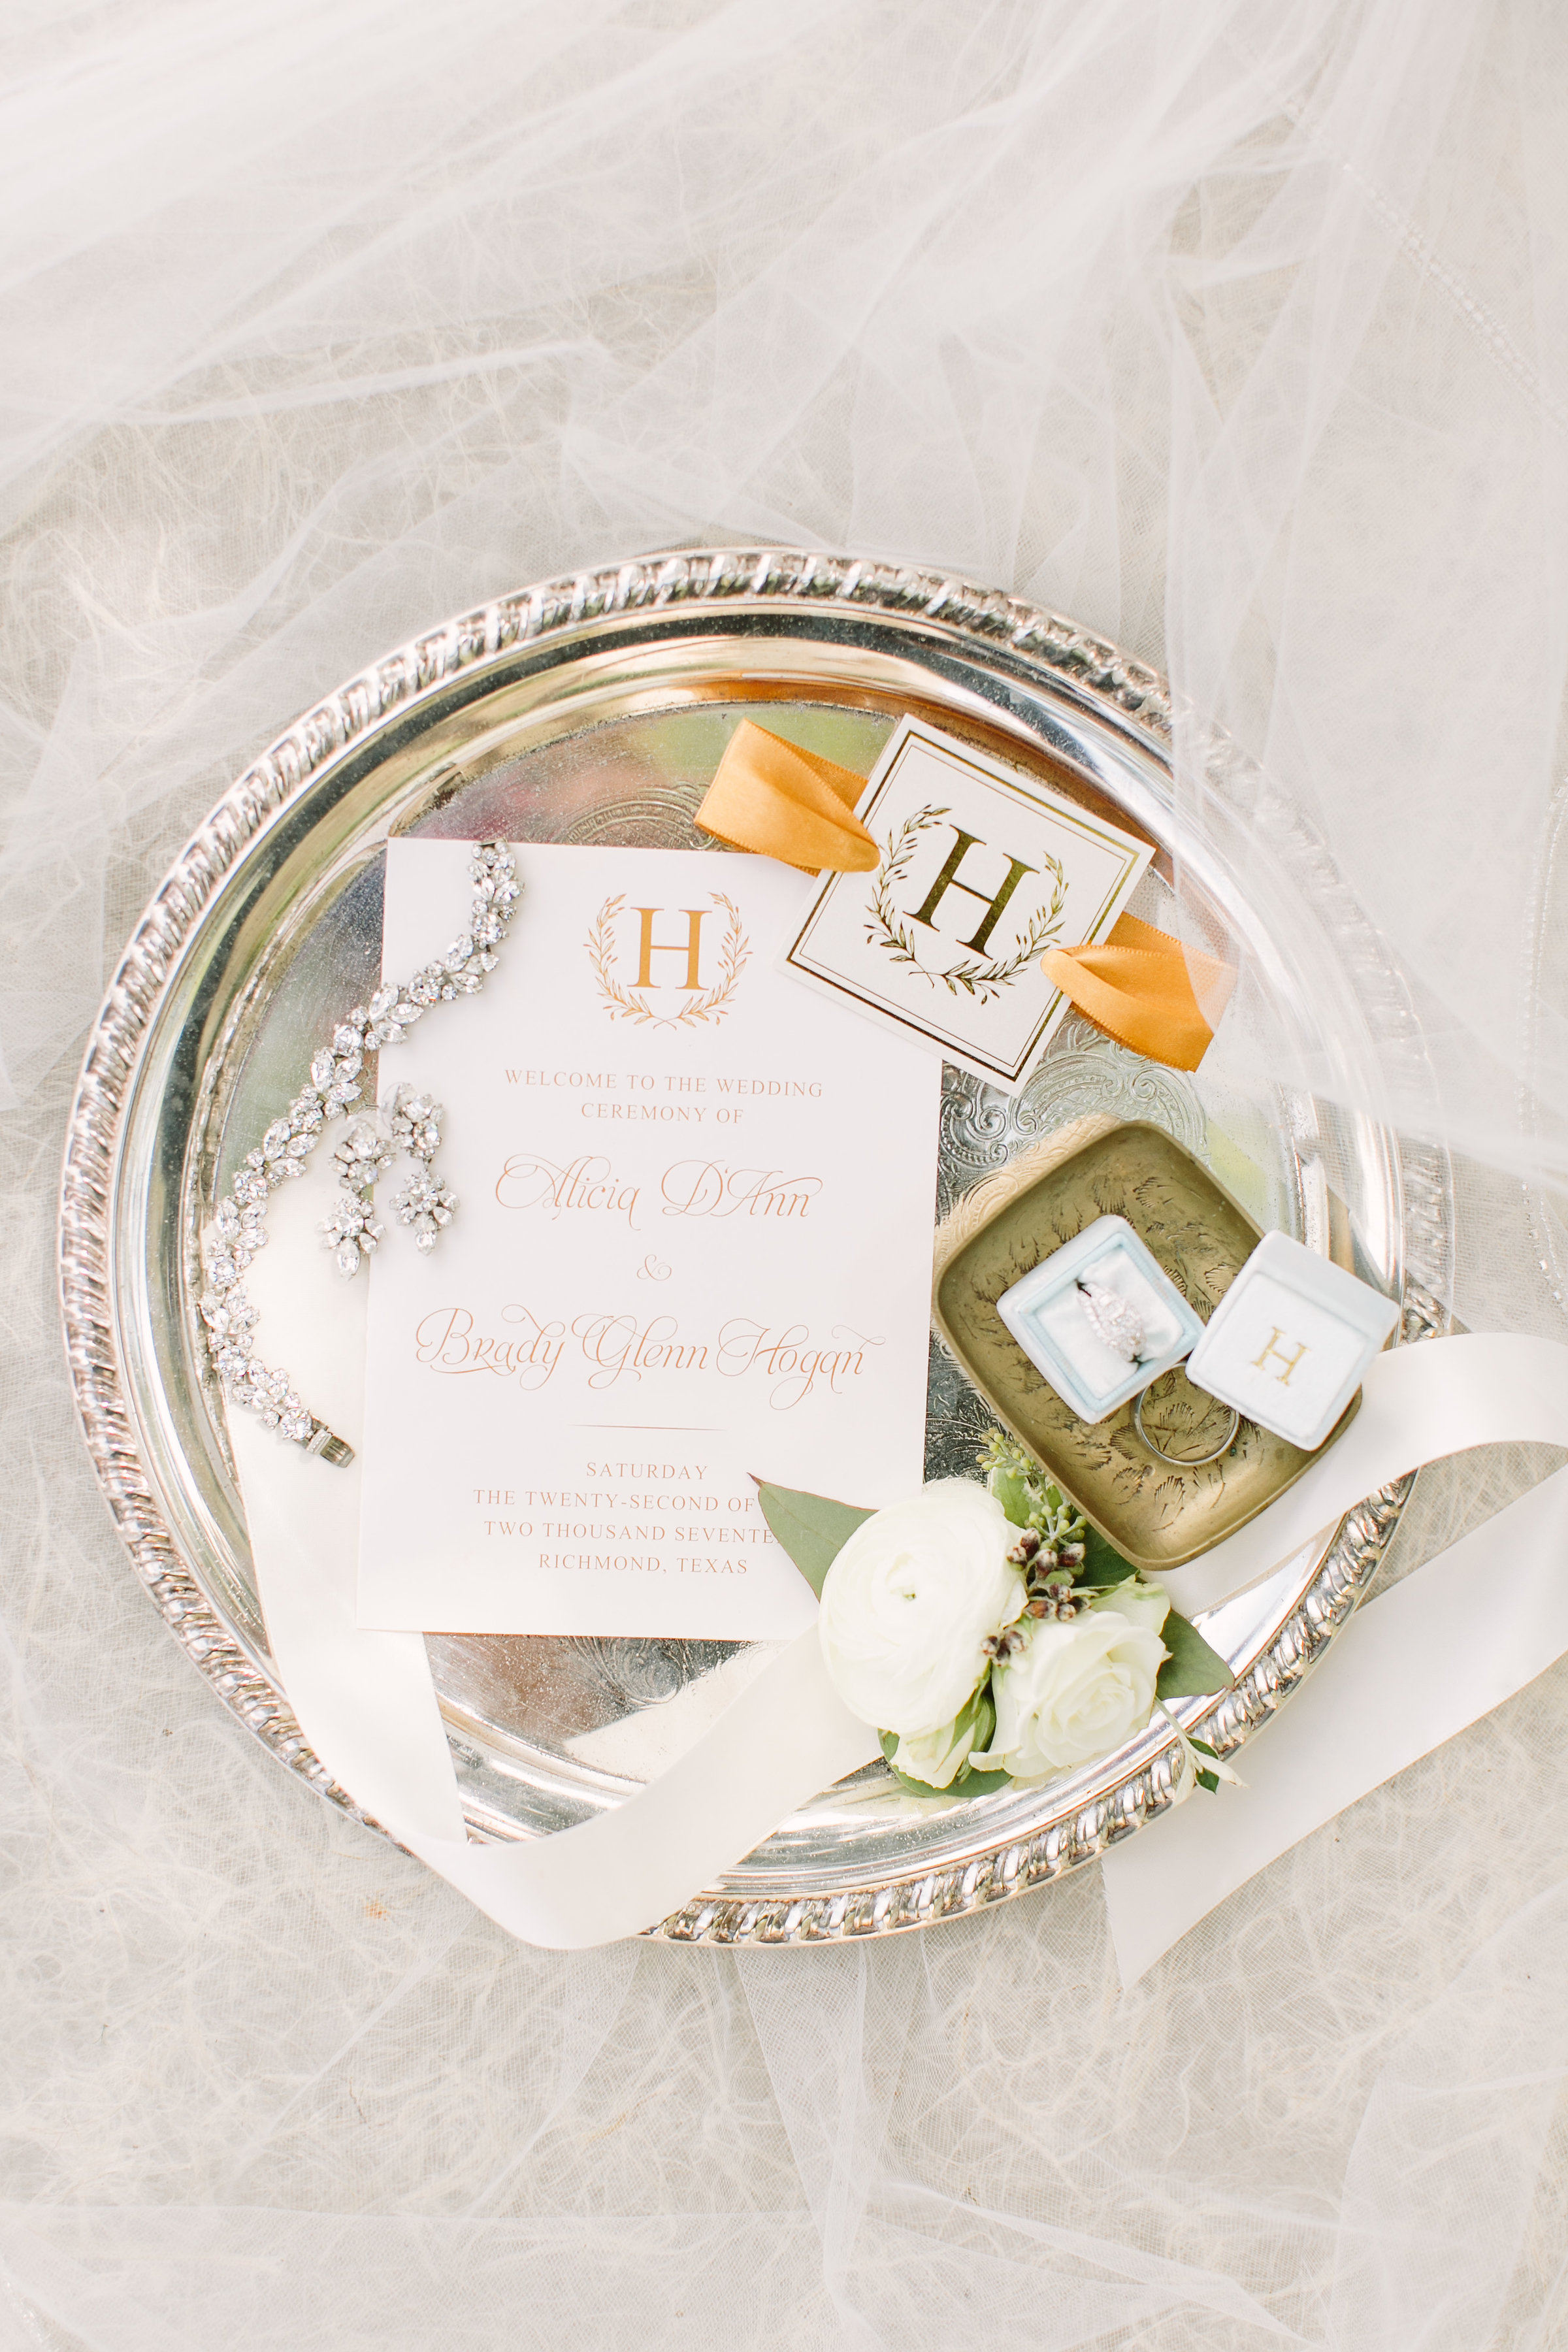 wedding-details-invitation-gold-ring-ringbox-white-florals-by-maxit-flower-design-in-houston-texas